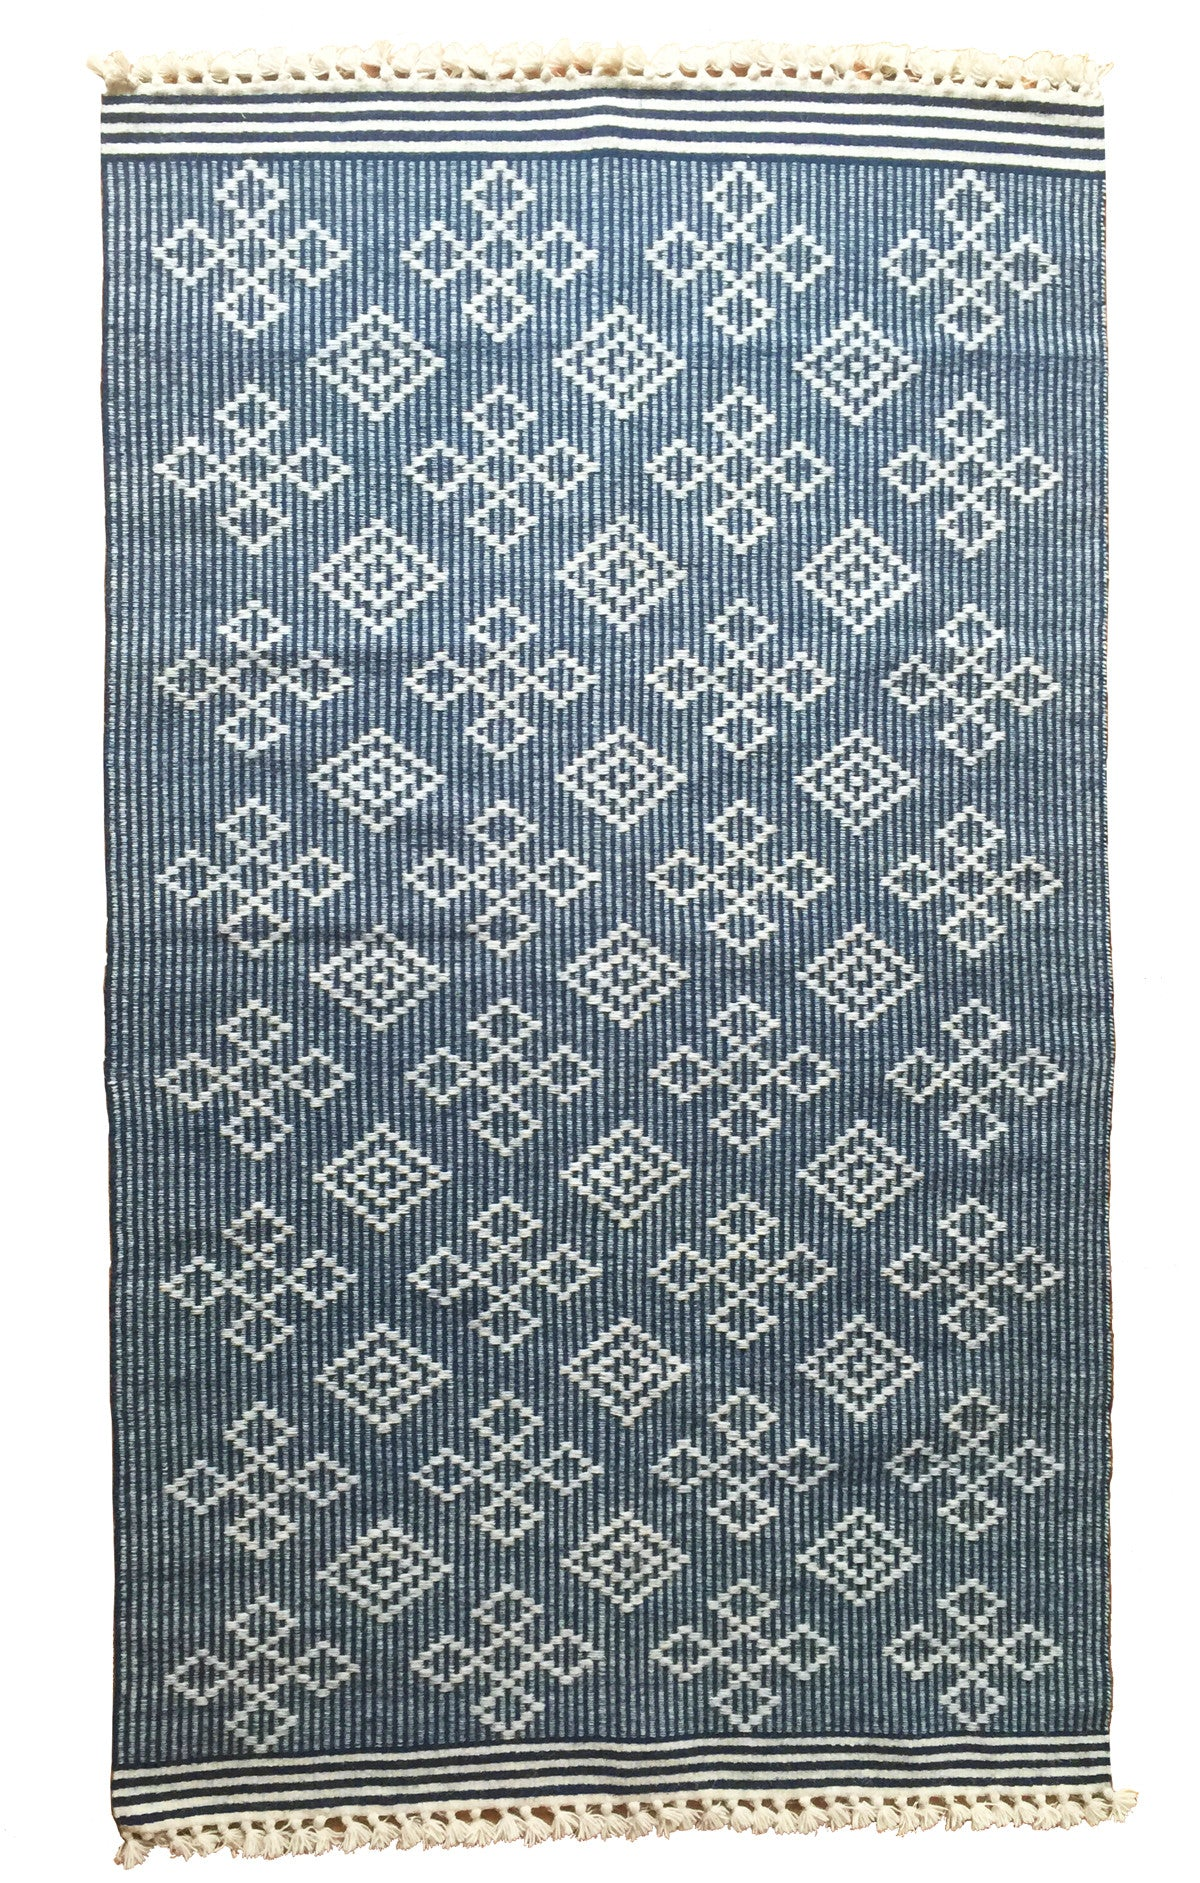 Navy blue flat weave statement rug. Handdyed and hand woven by master weavers in India. Perfect lightweight rug for spring and summer.